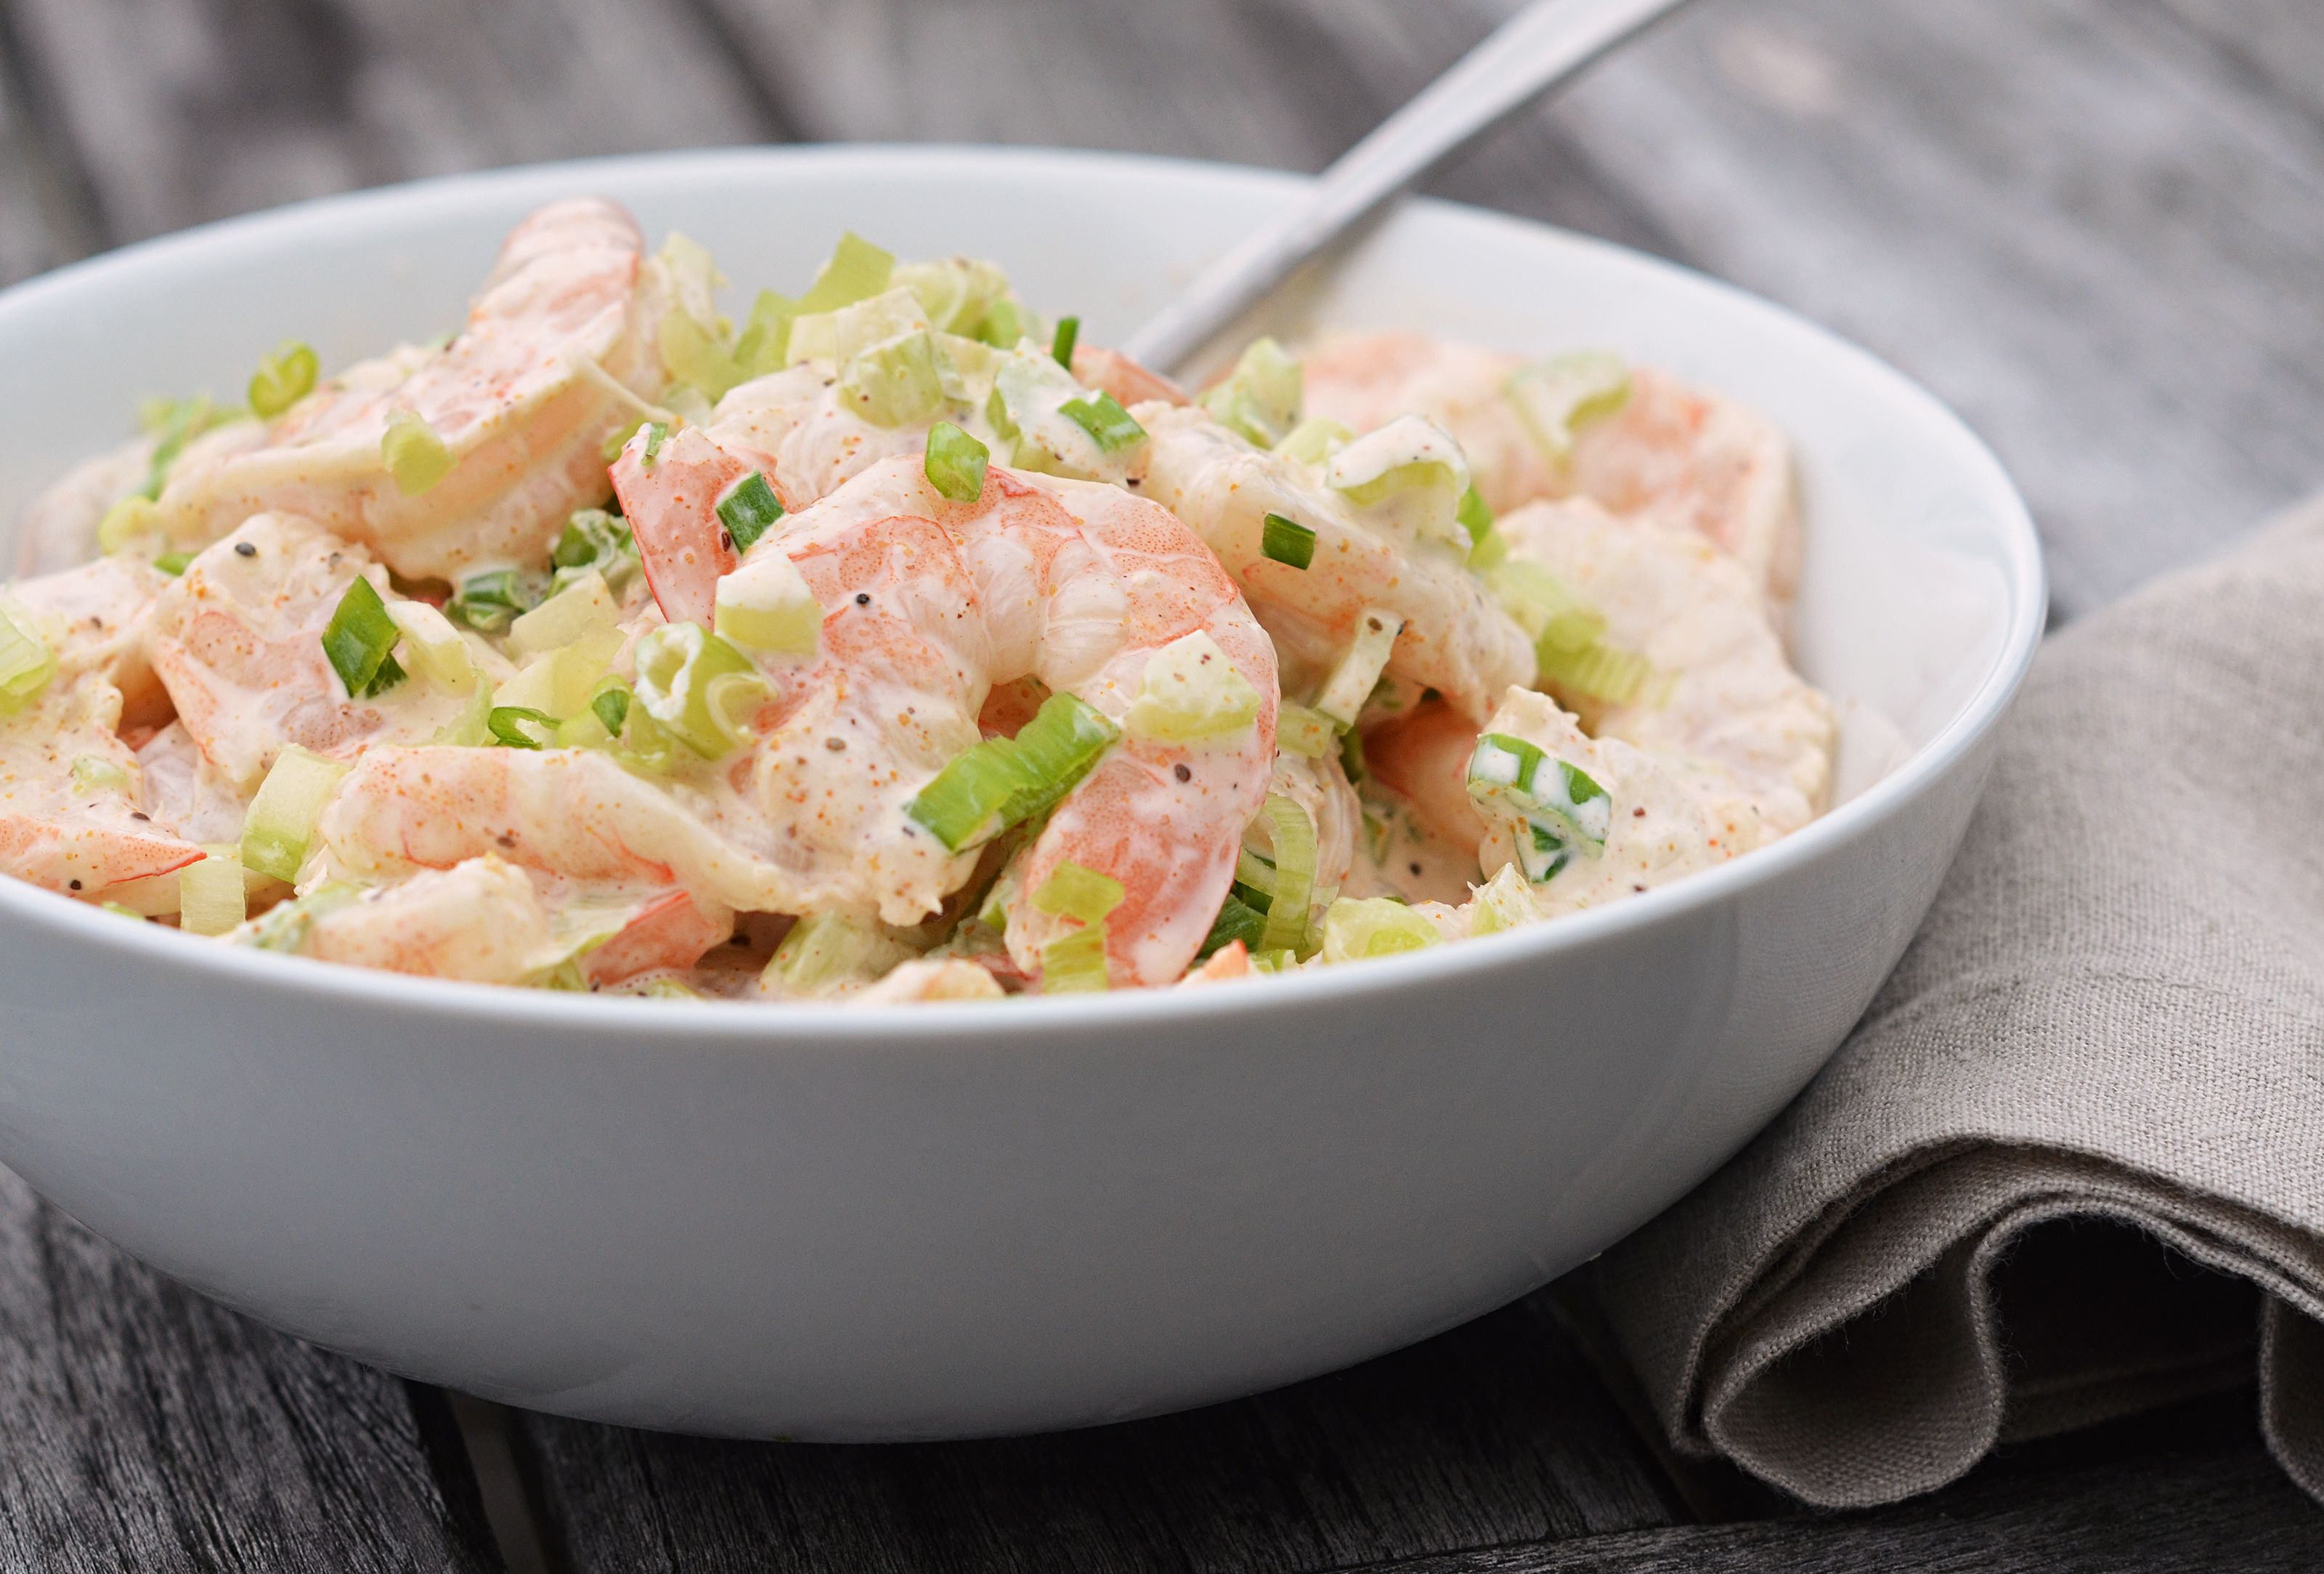 Creamy Creamy Old Bay Shrimp Salad Once Upon A Chef Recipe Sea Food Salad Recipes Shrimp Salad Recipes